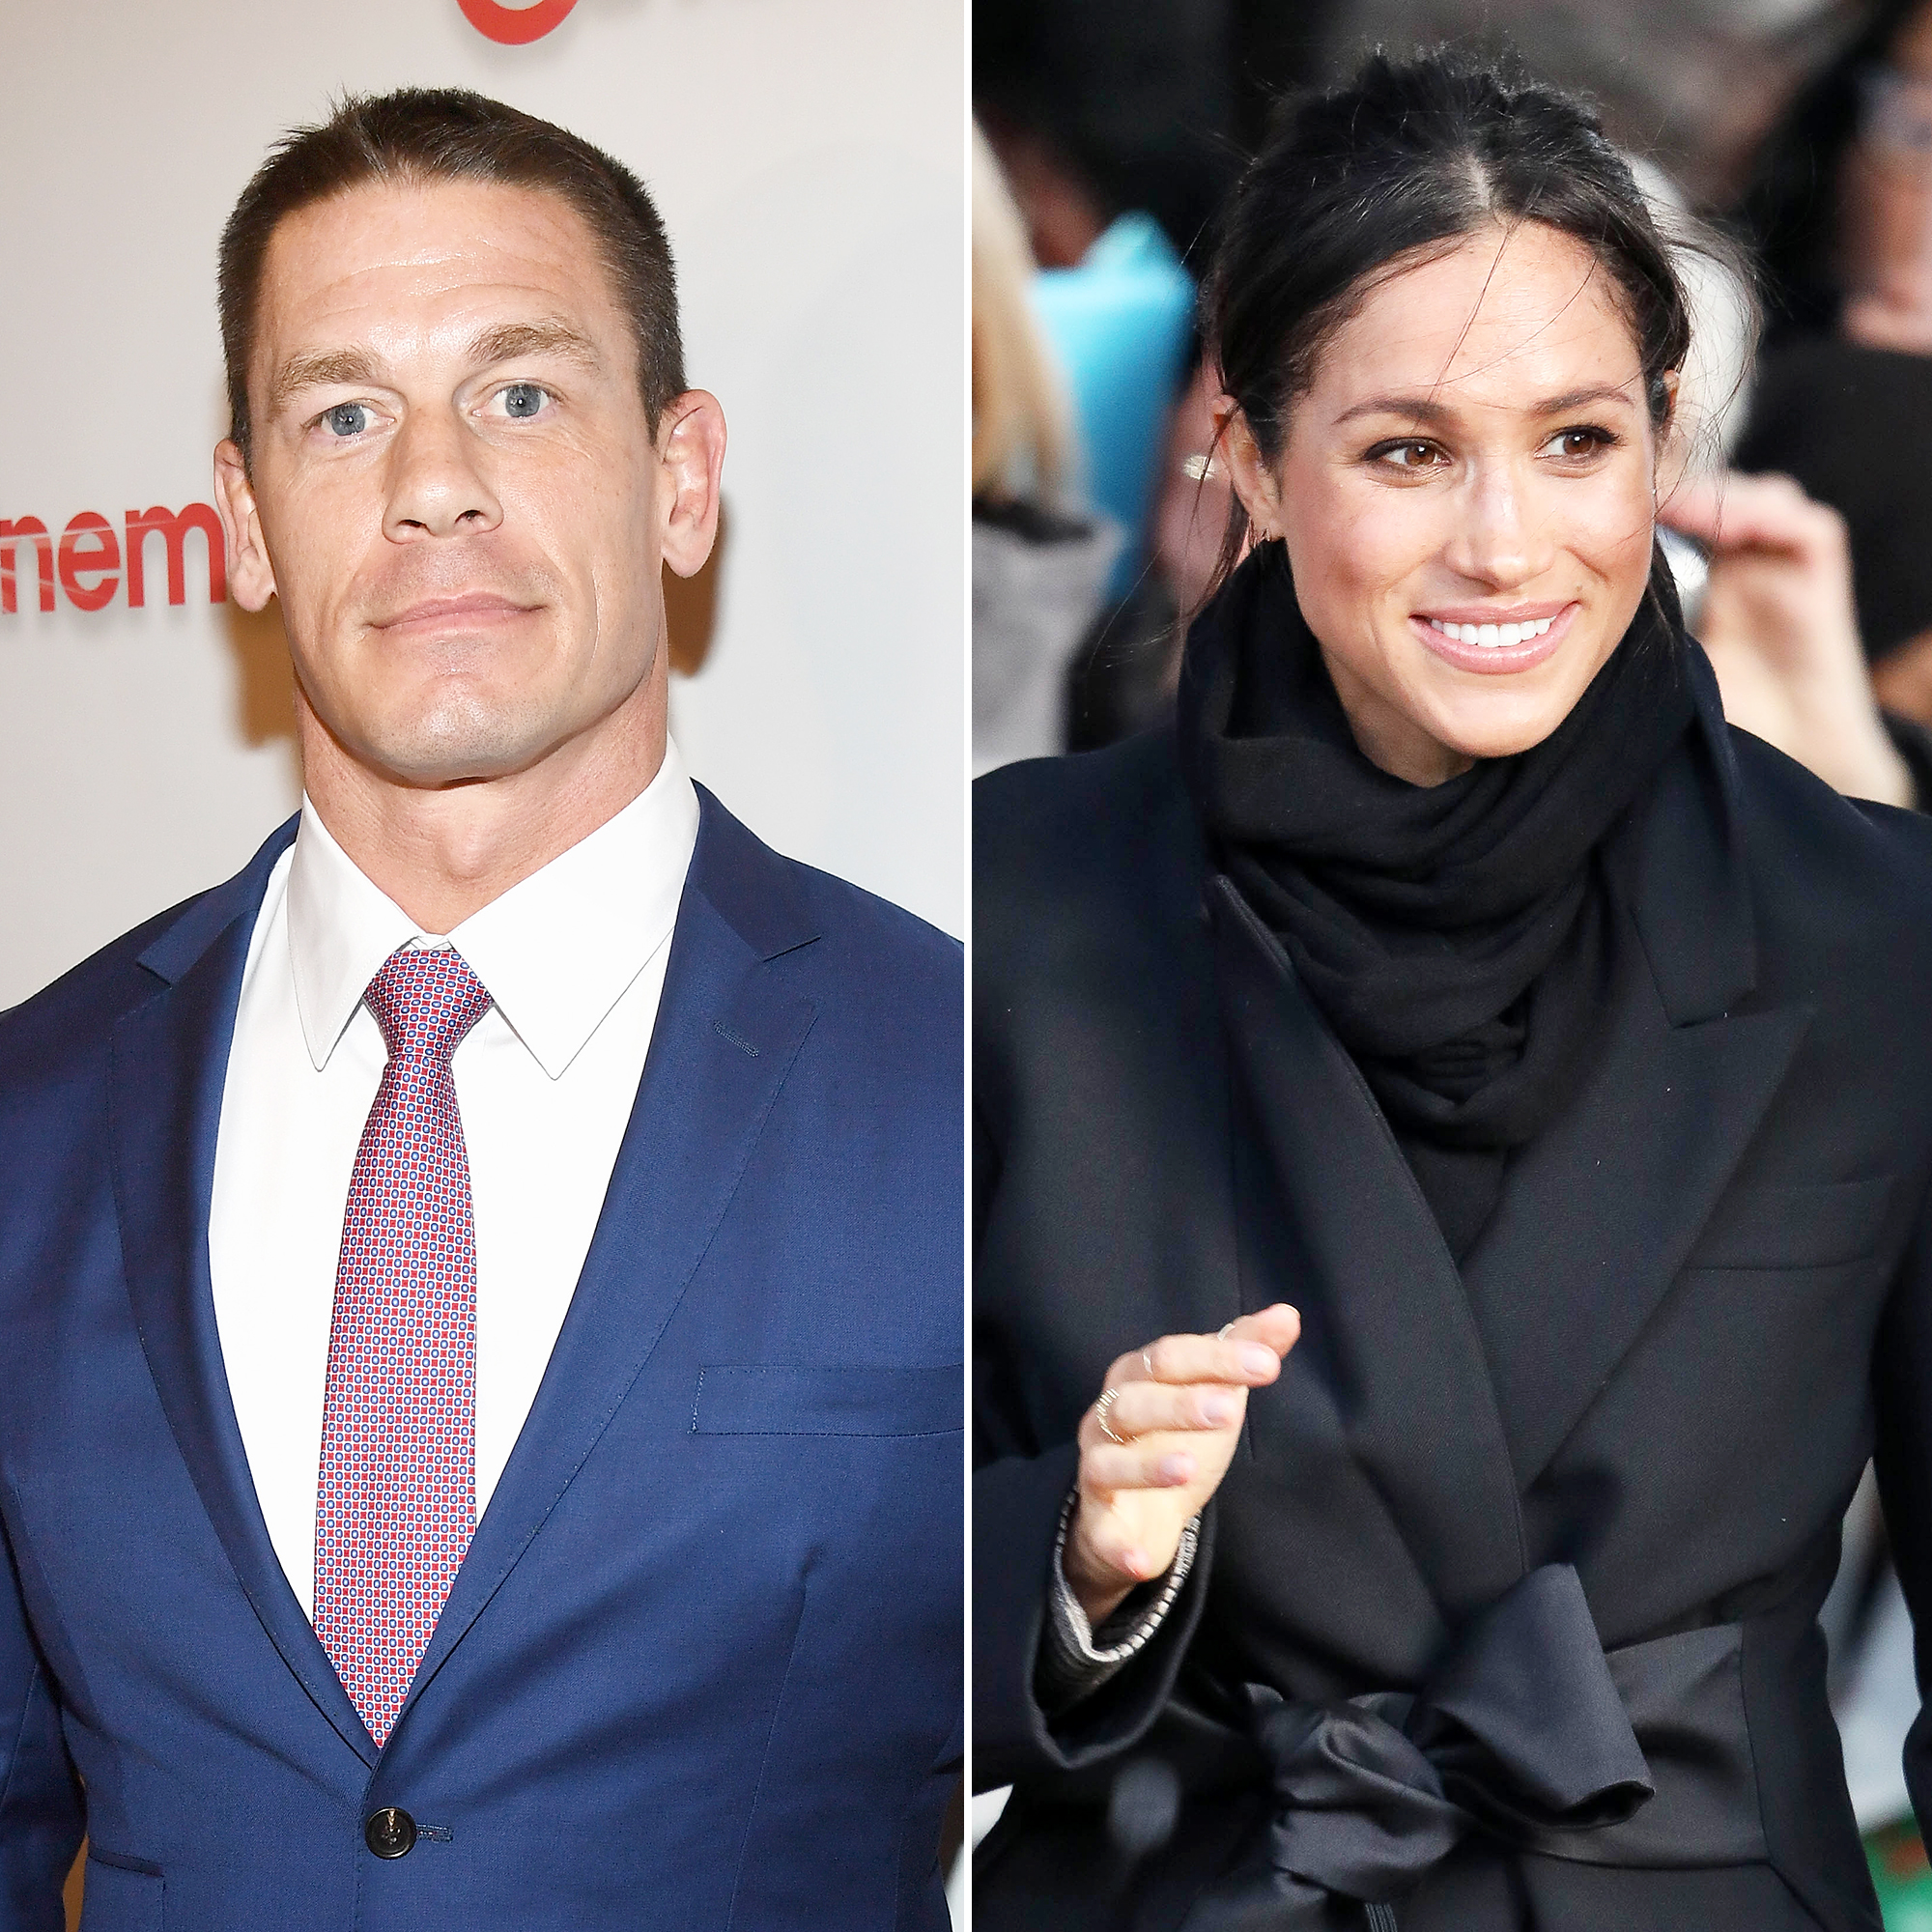 John Cena Offers to Walk Meghan Markle Down the Aisle at Royal Wedding